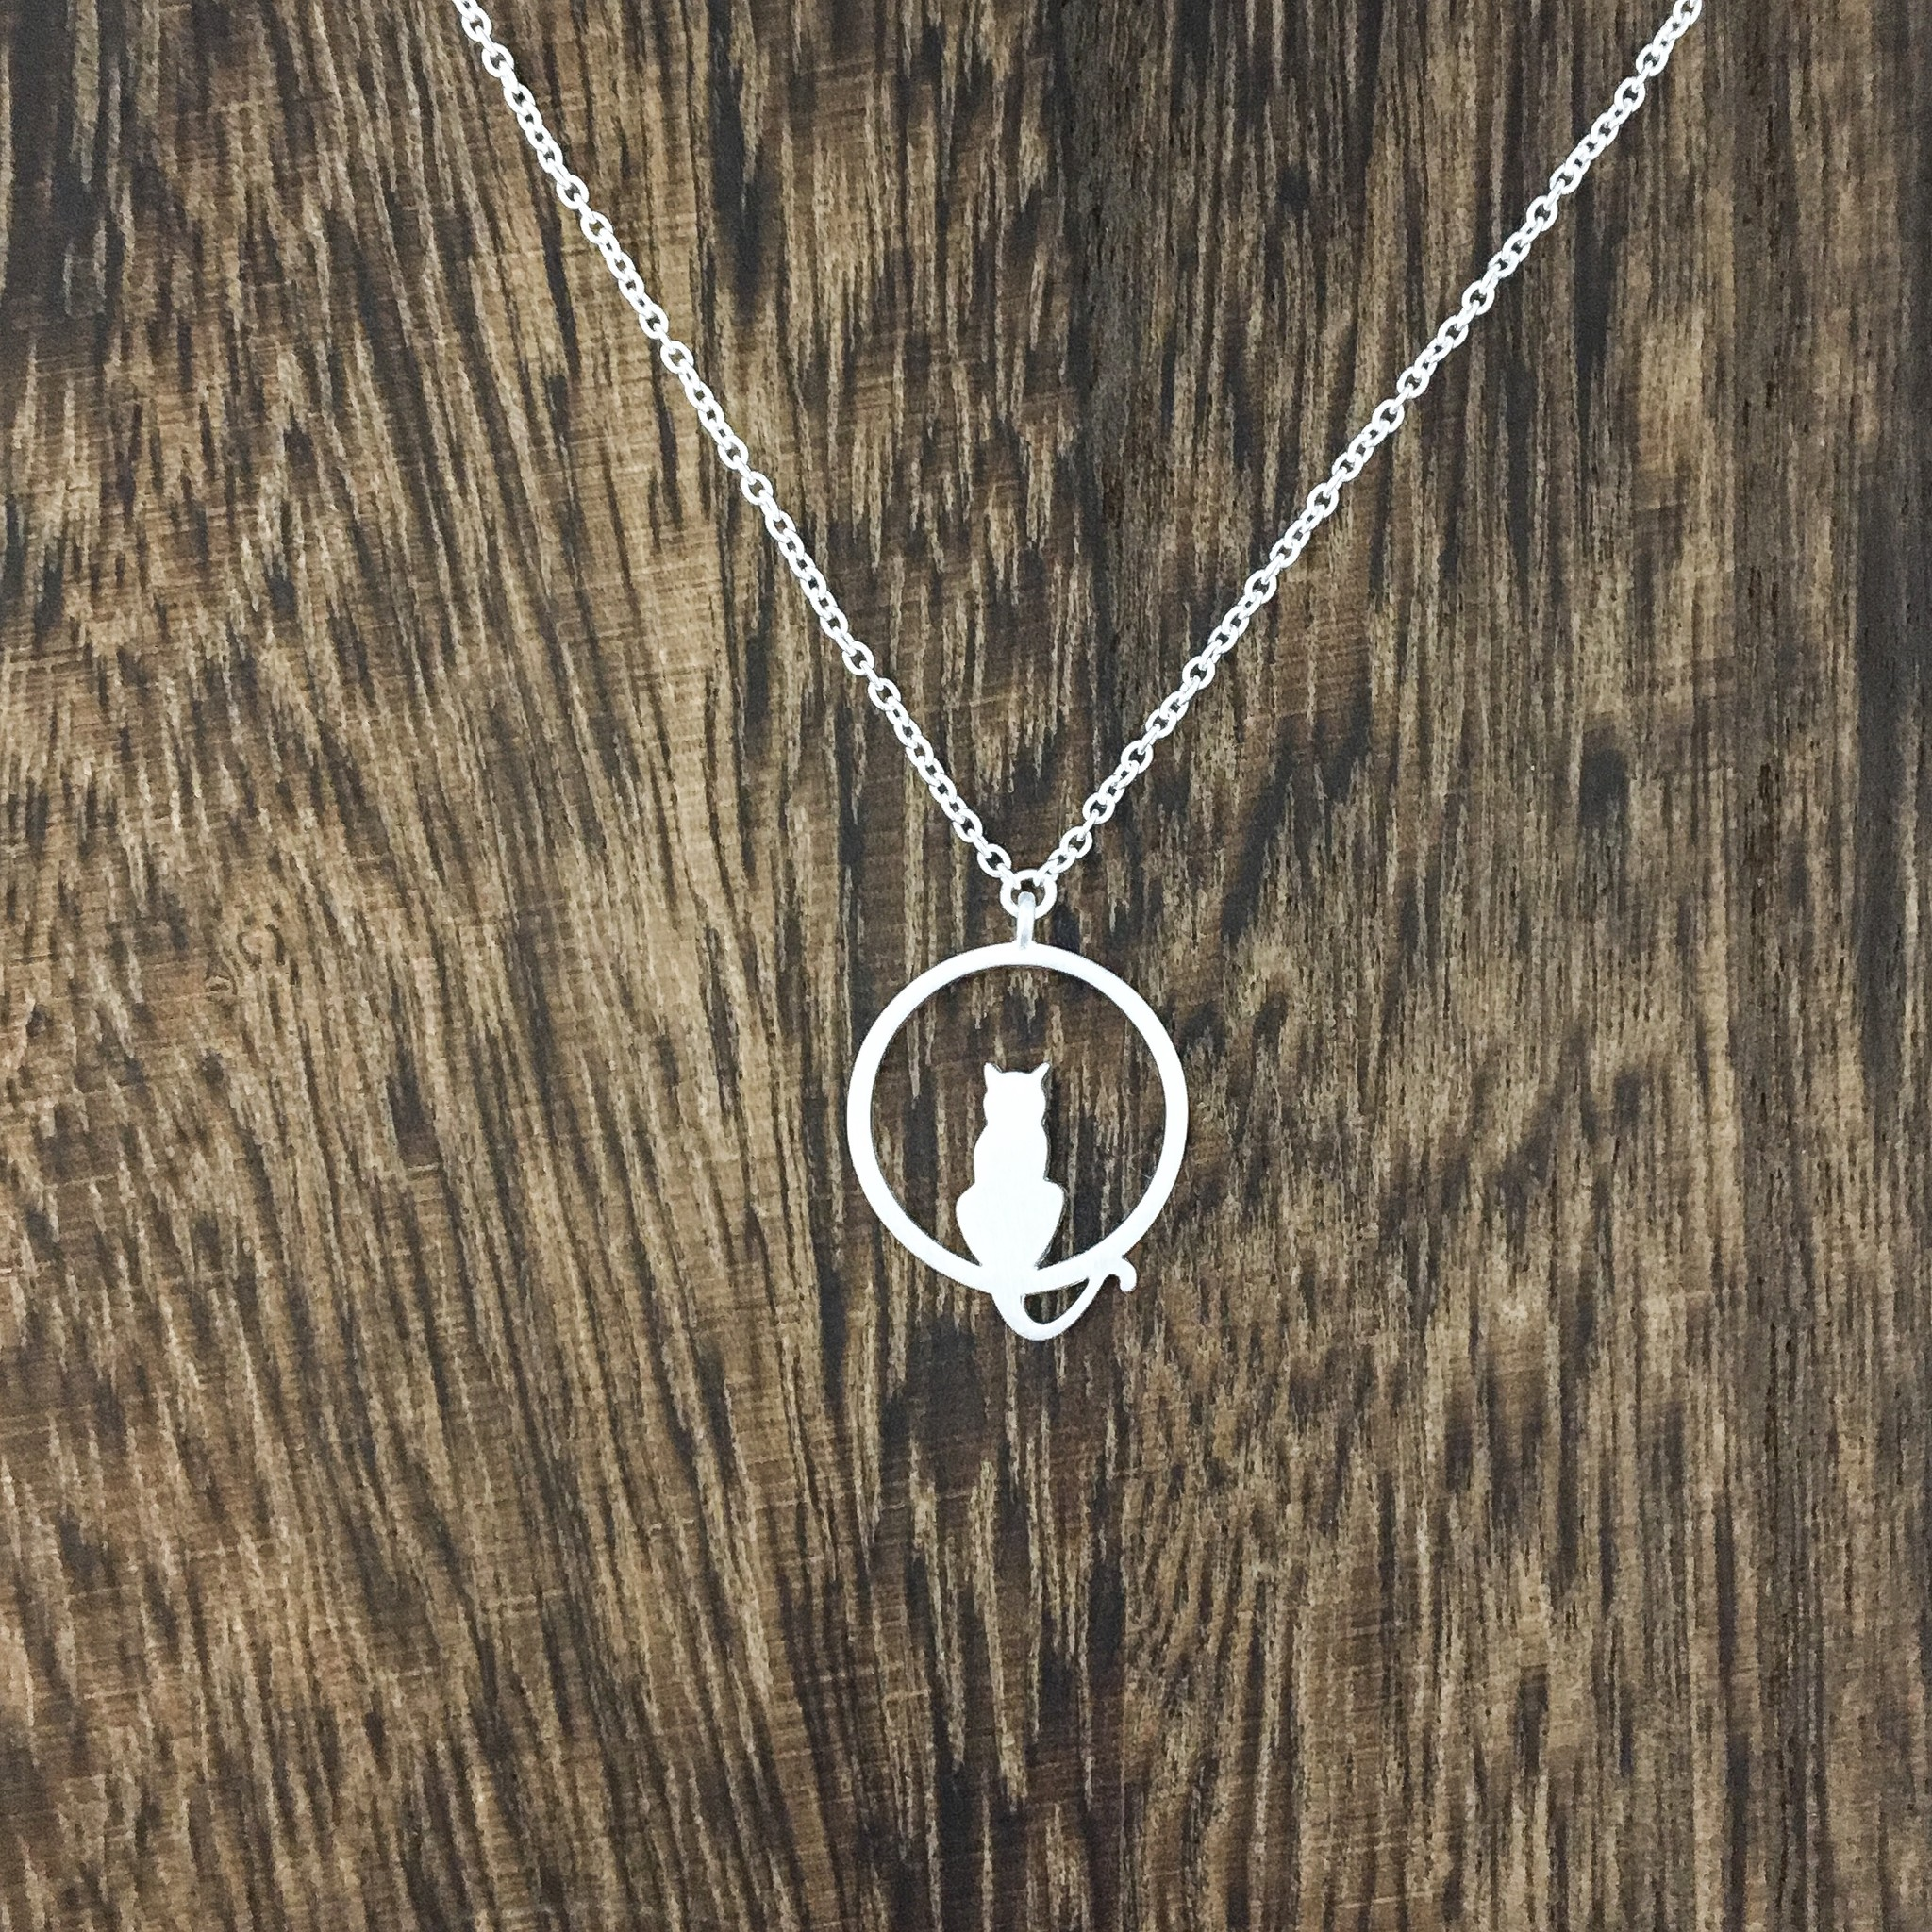 Tashi Cat in circle Necklace